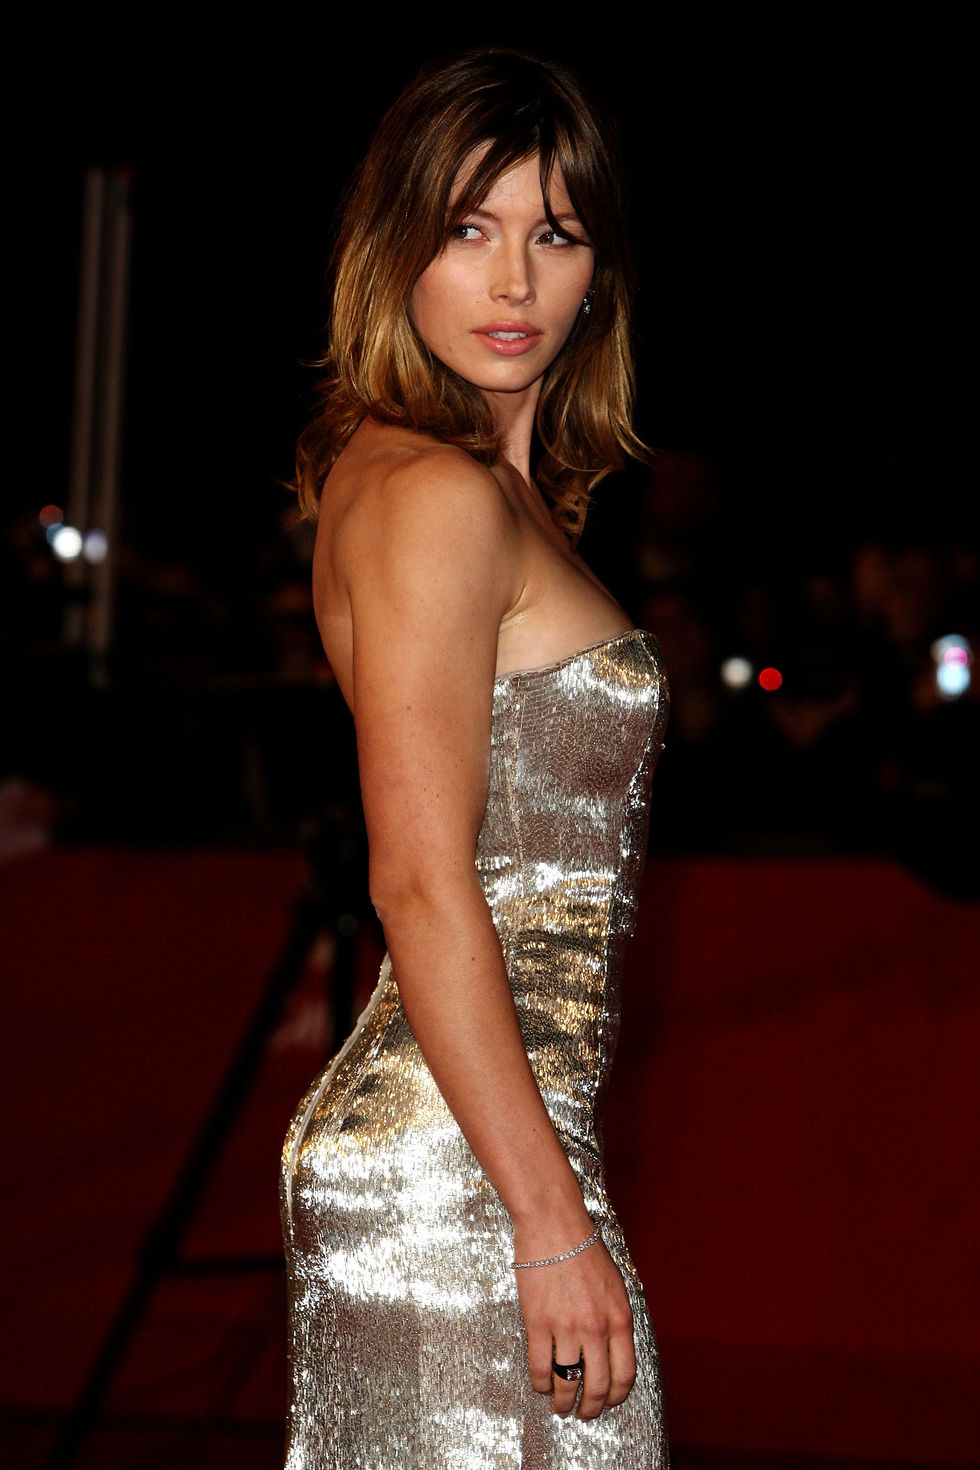 jessica-biel-easy-virtue-premiere-in-rome-05